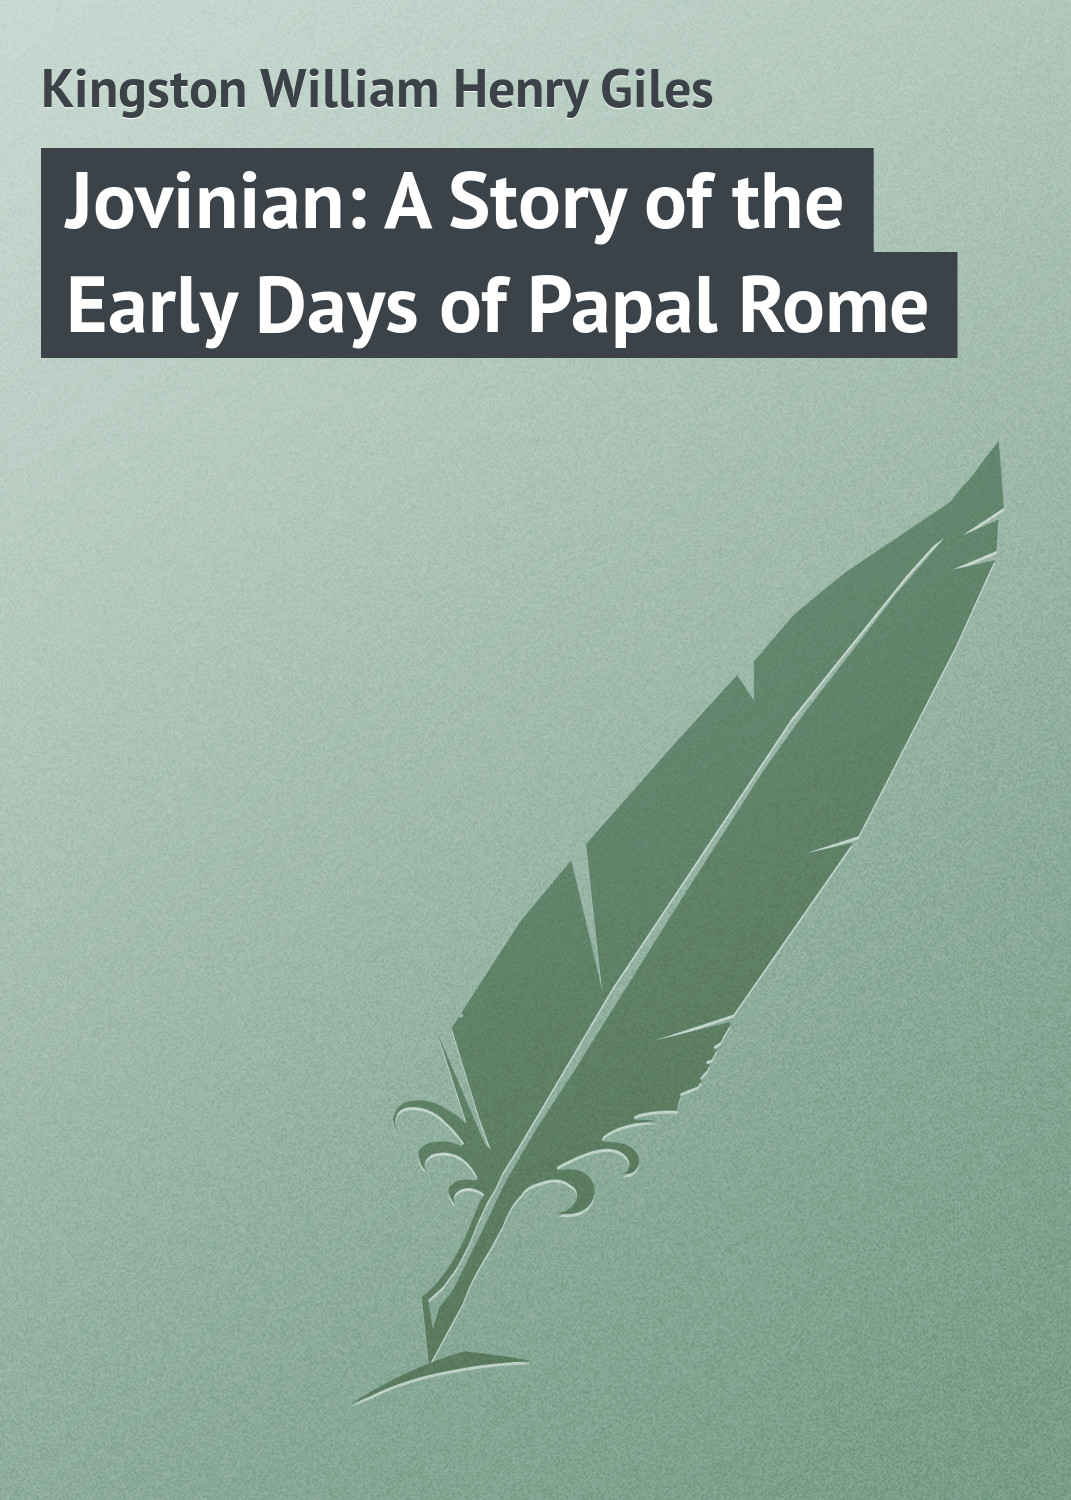 Фото - Kingston William Henry Giles Jovinian: A Story of the Early Days of Papal Rome hereward end of days